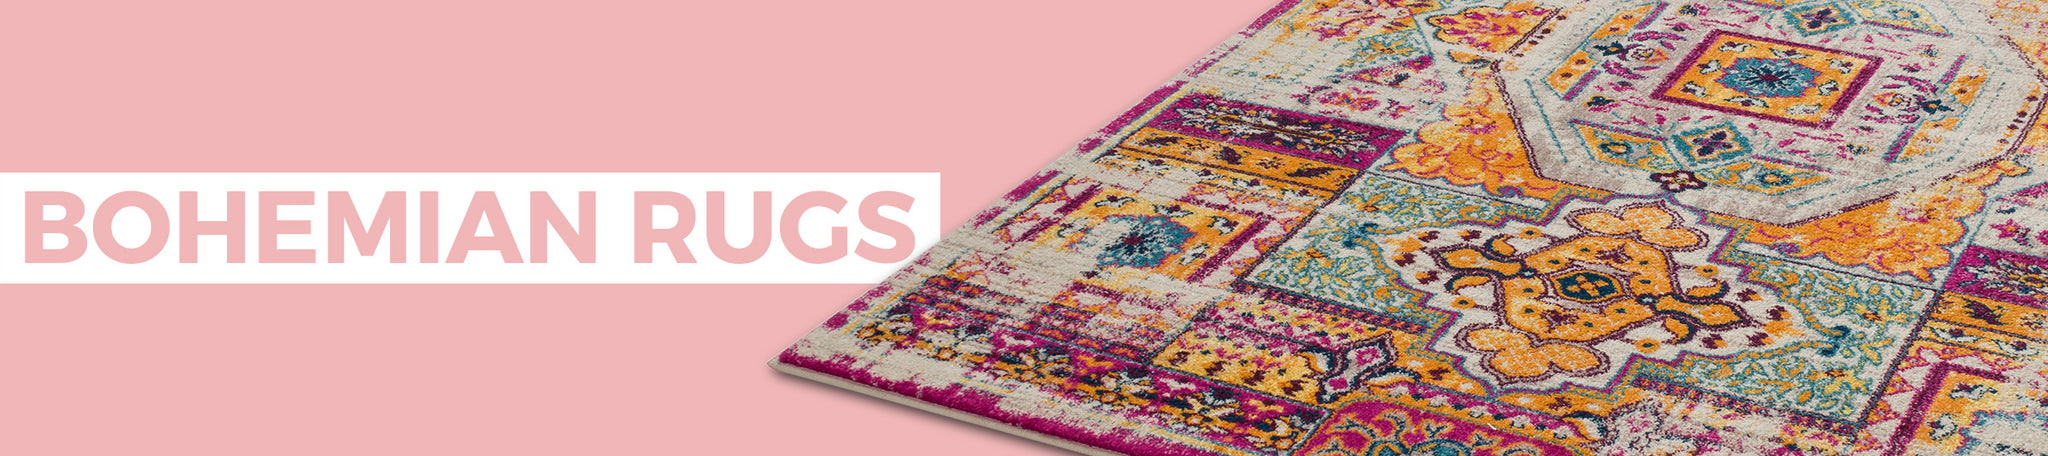 Bohemian Rugs Collection from Well Woven